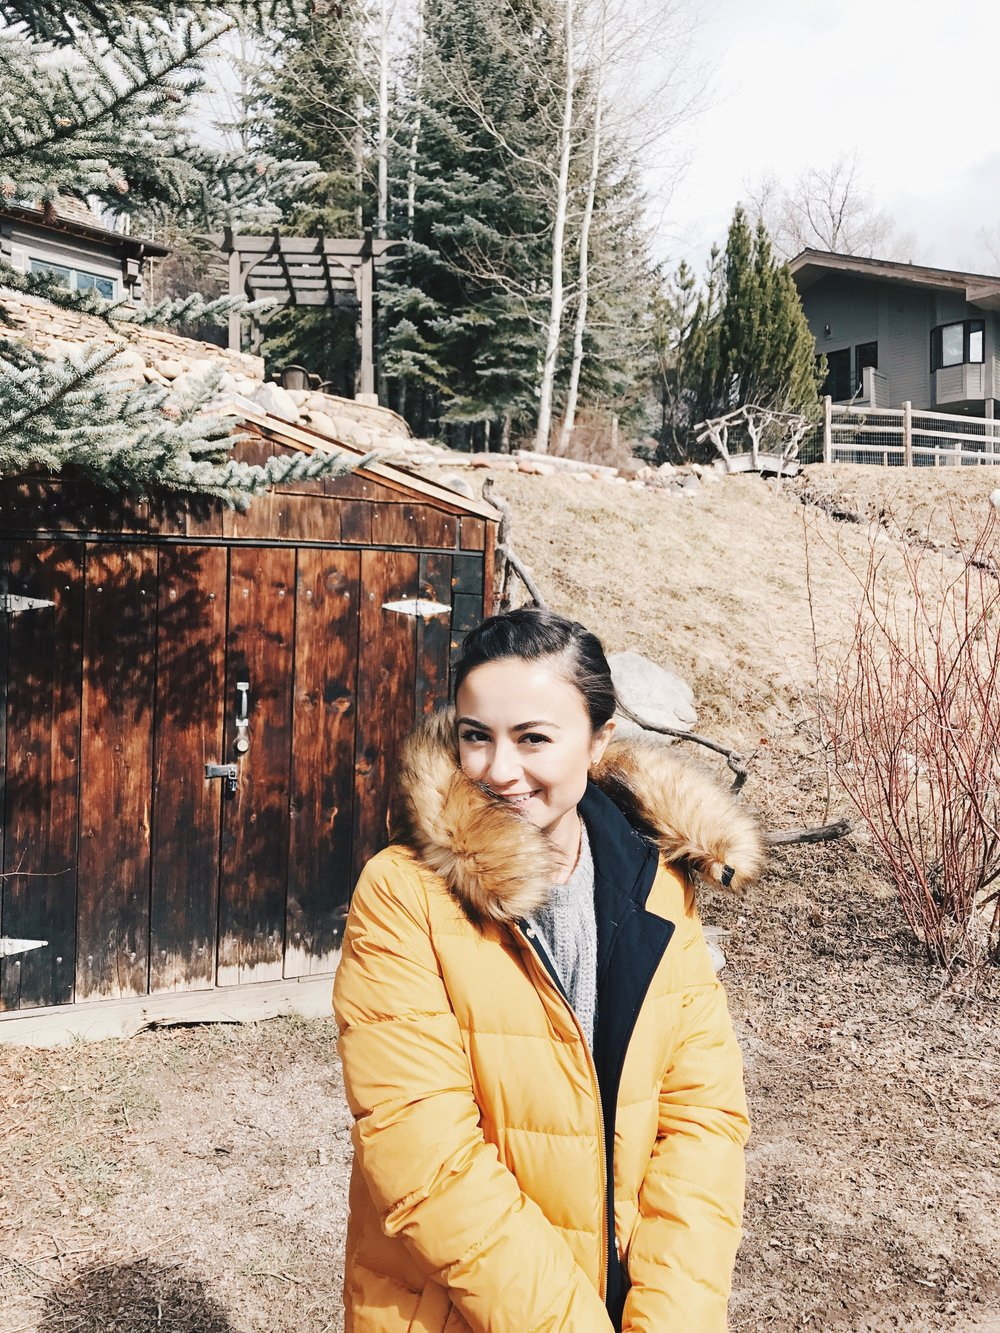 Me being all Little House on the Prairie, Aspen style.